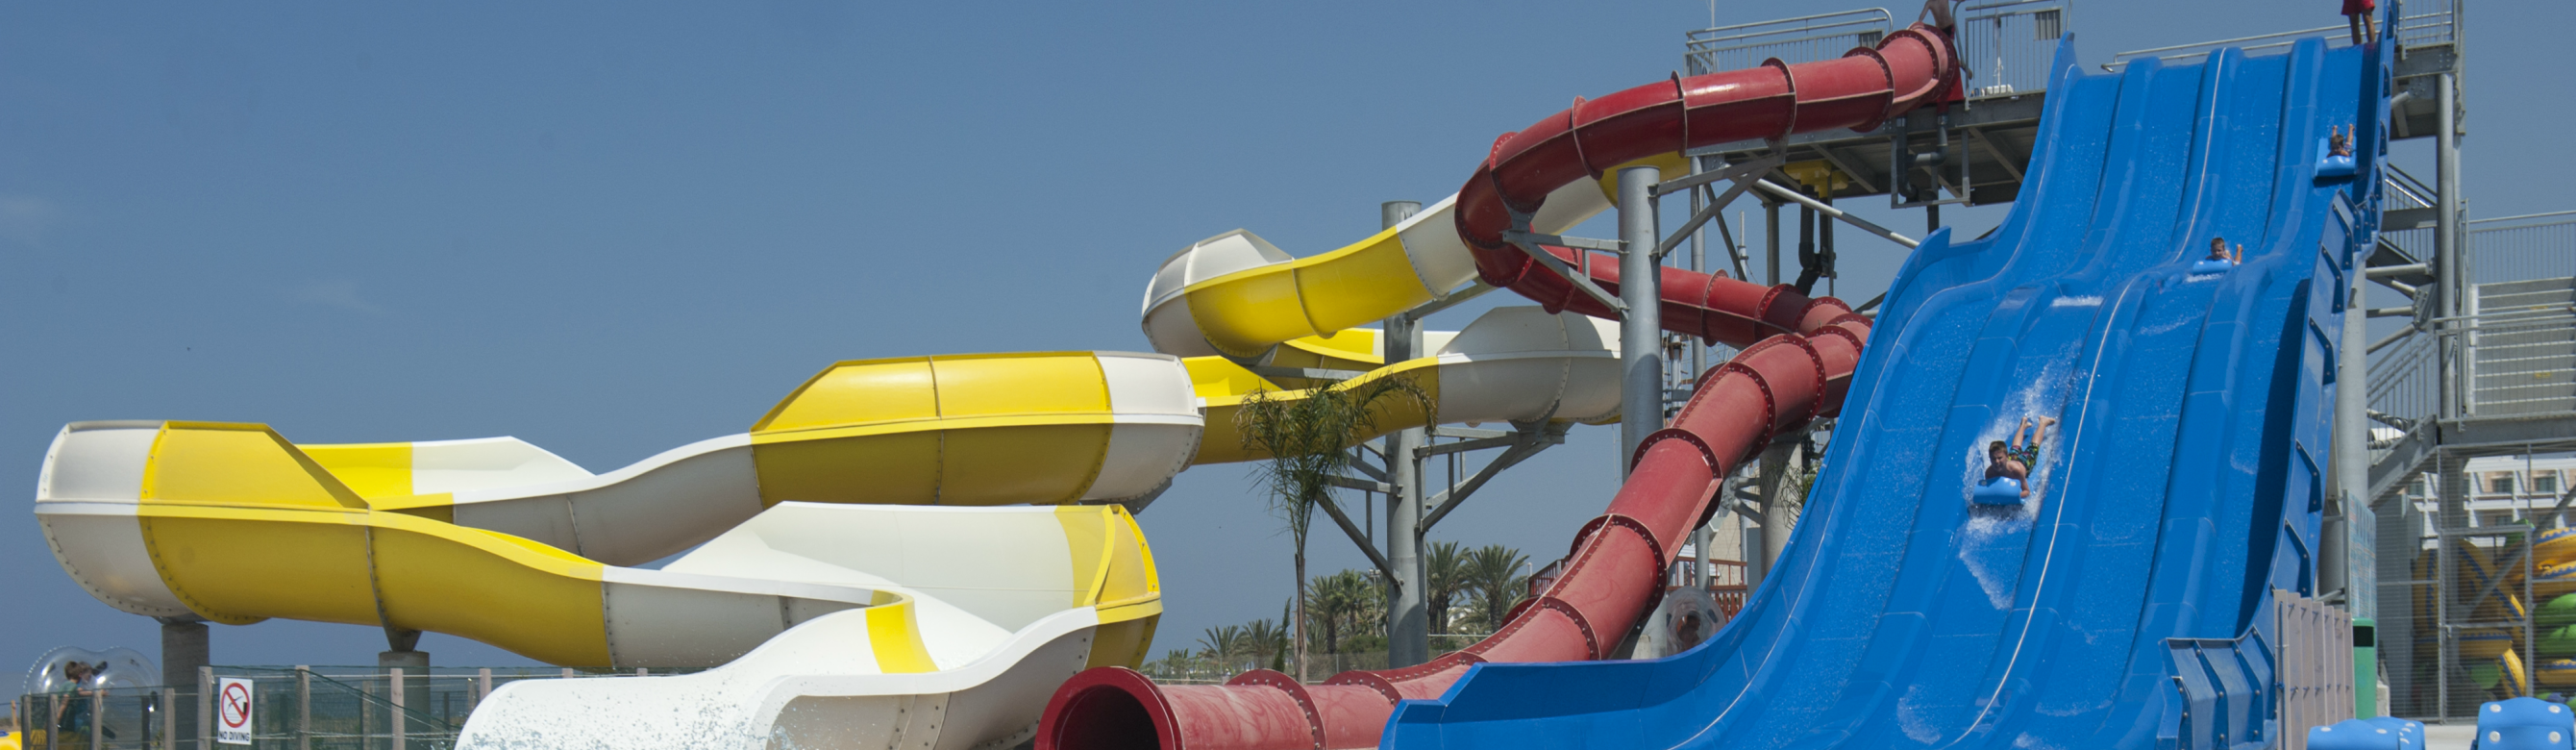 Louis_Phaethon_Beach_-_Waterpark_.png